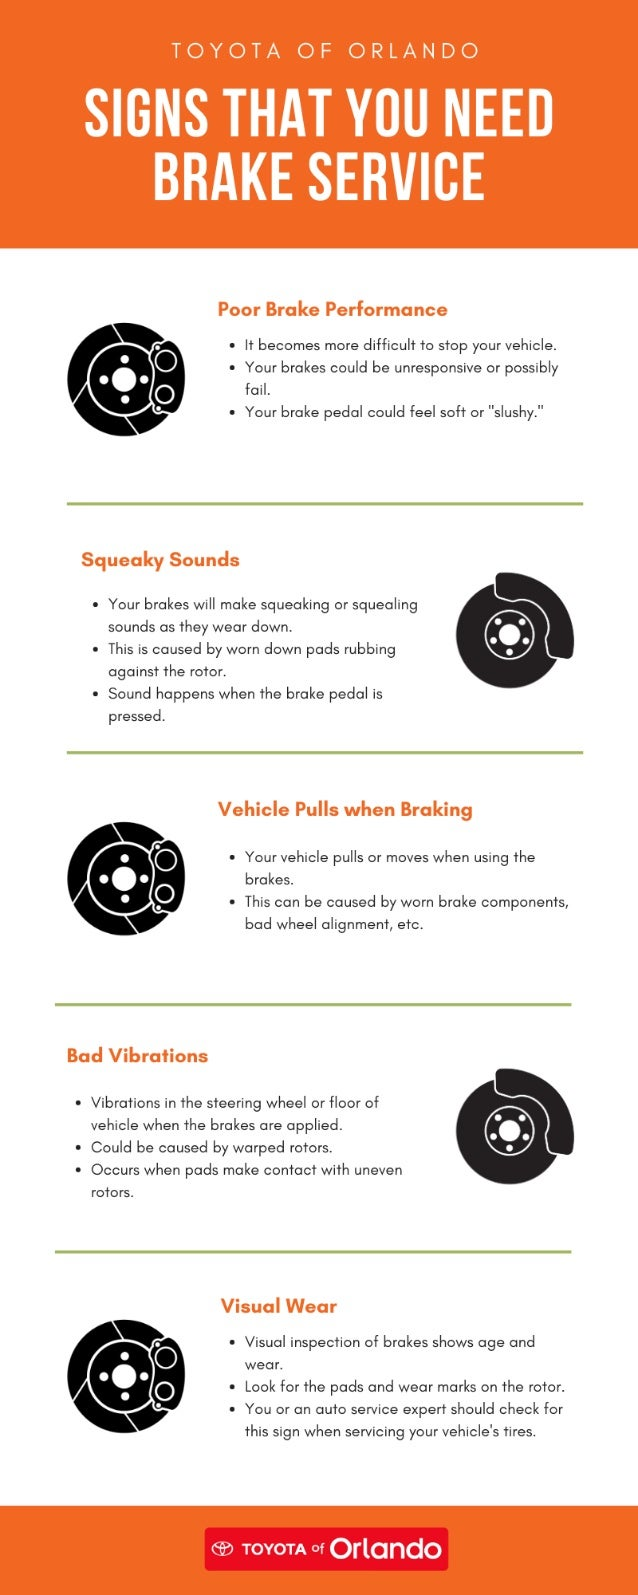 Signs That You Need Brake Service